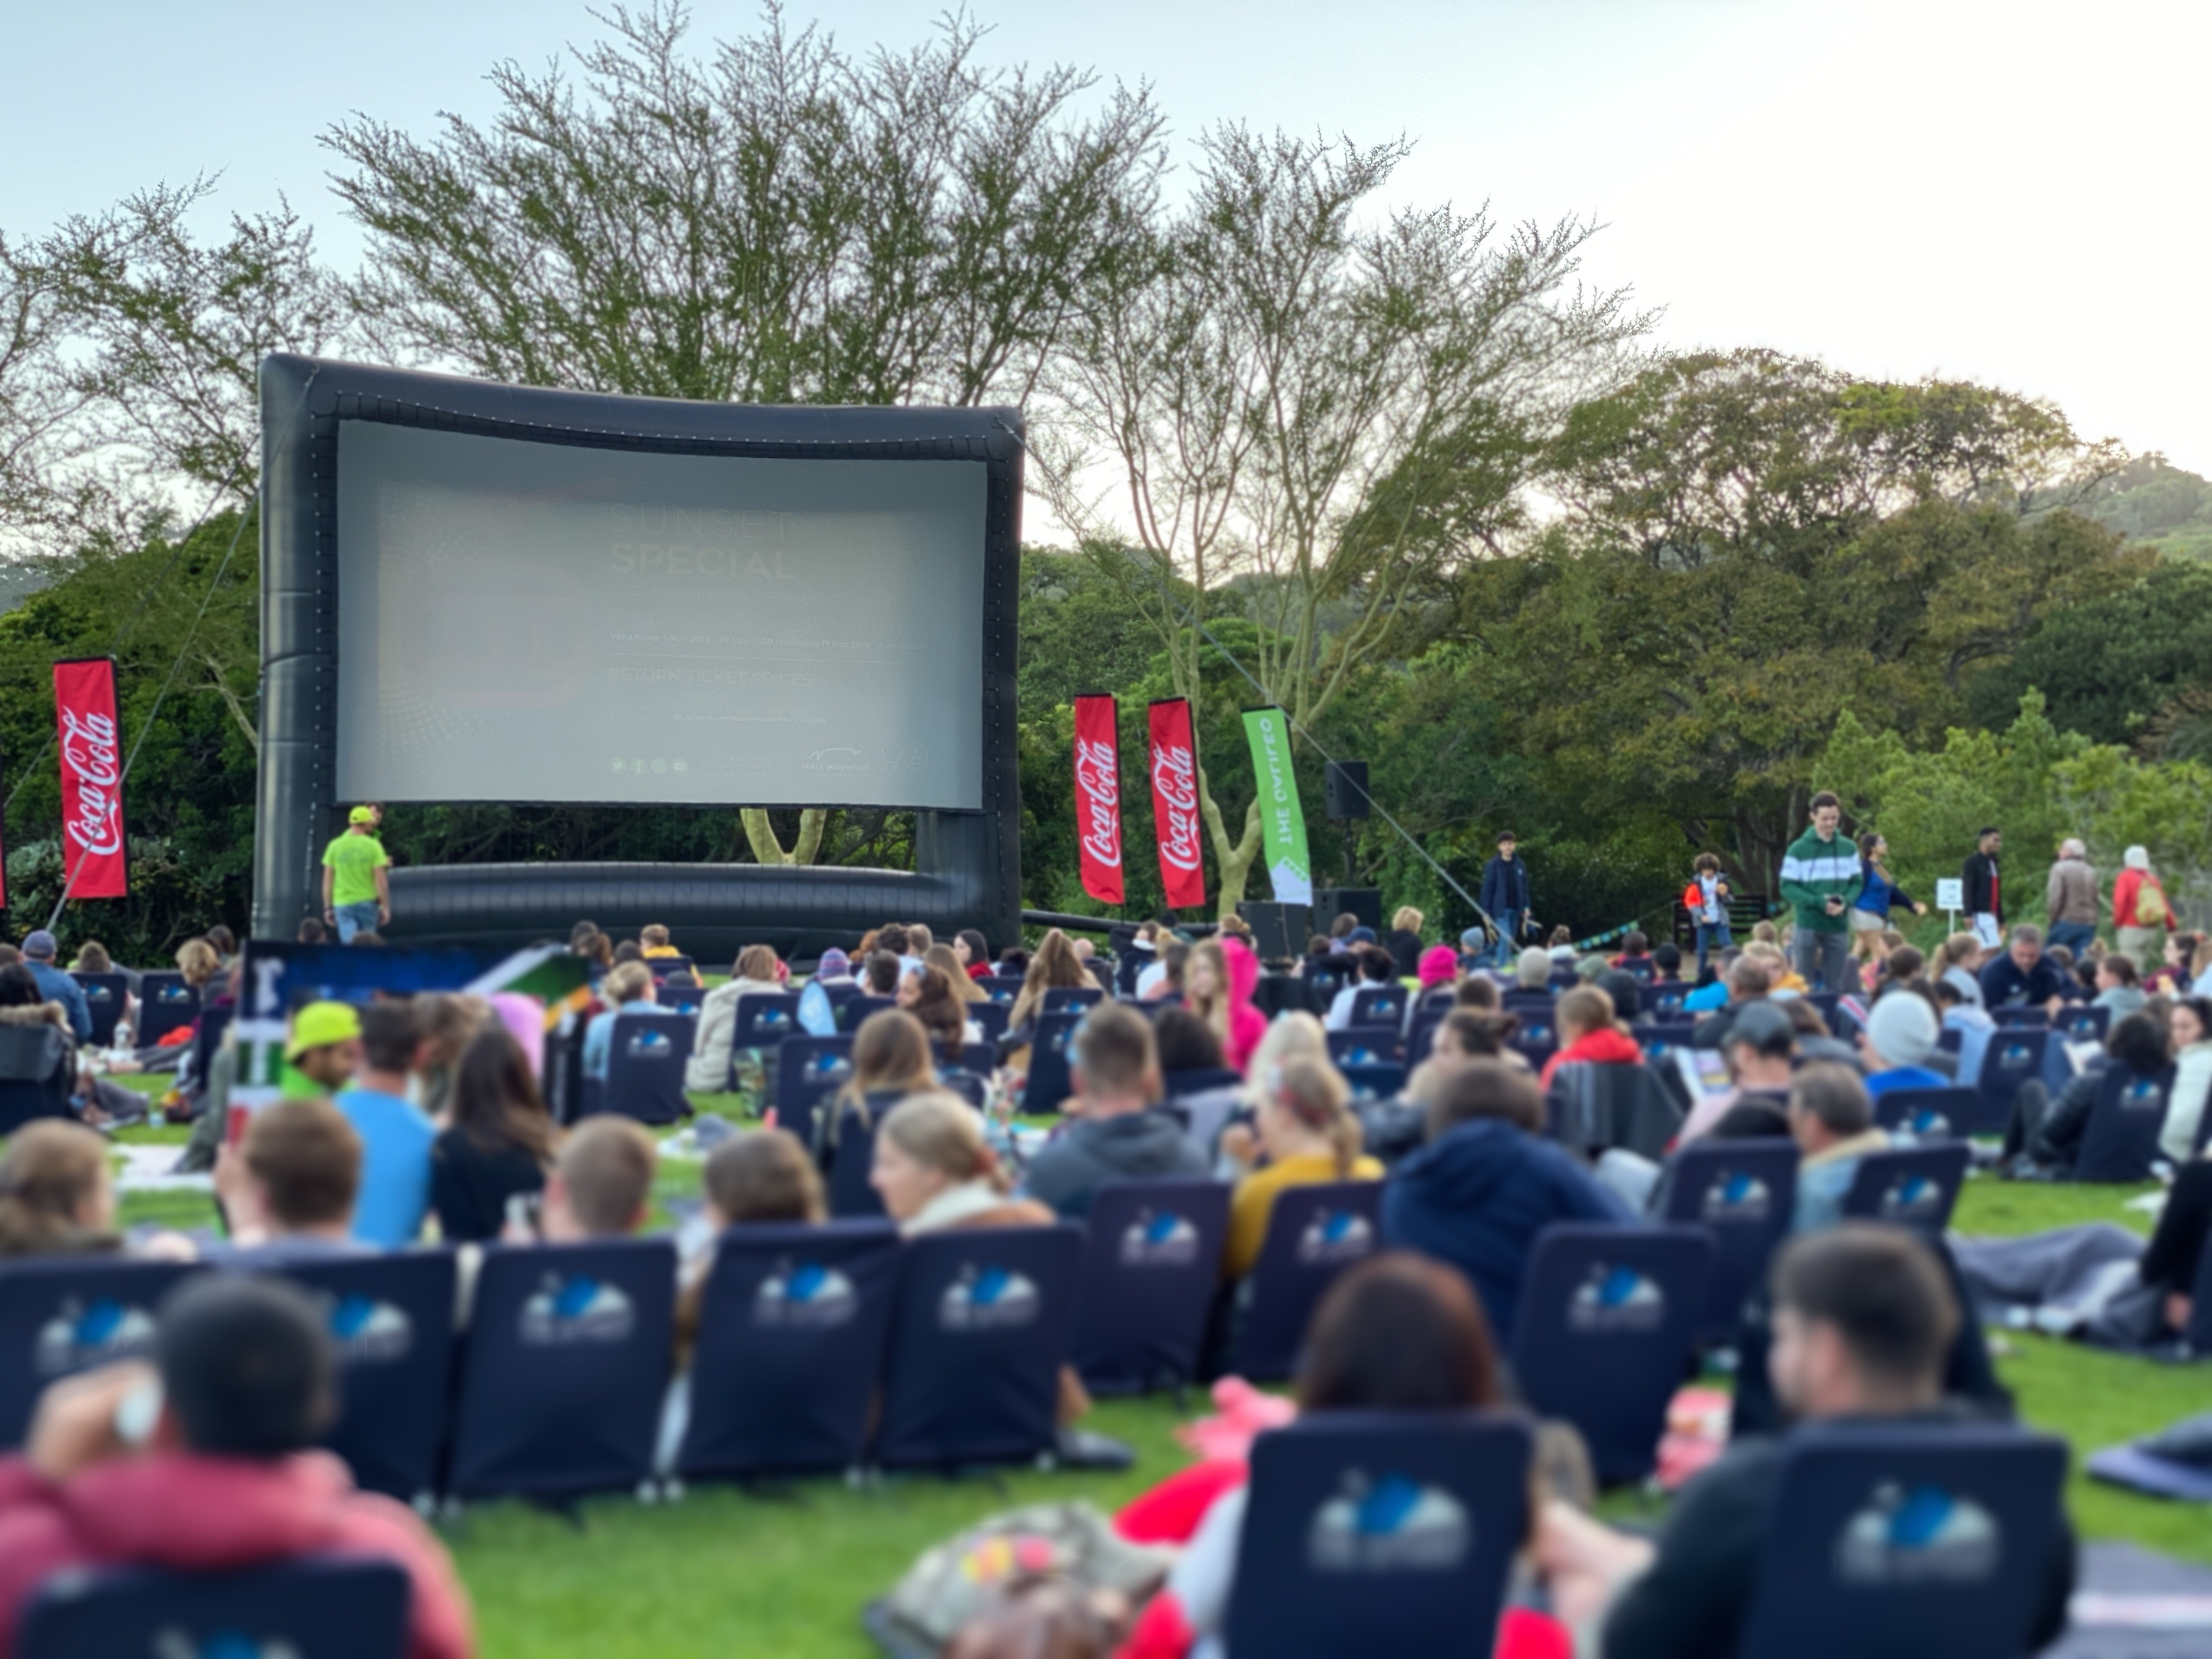 kirstenbosch outdoor cinema